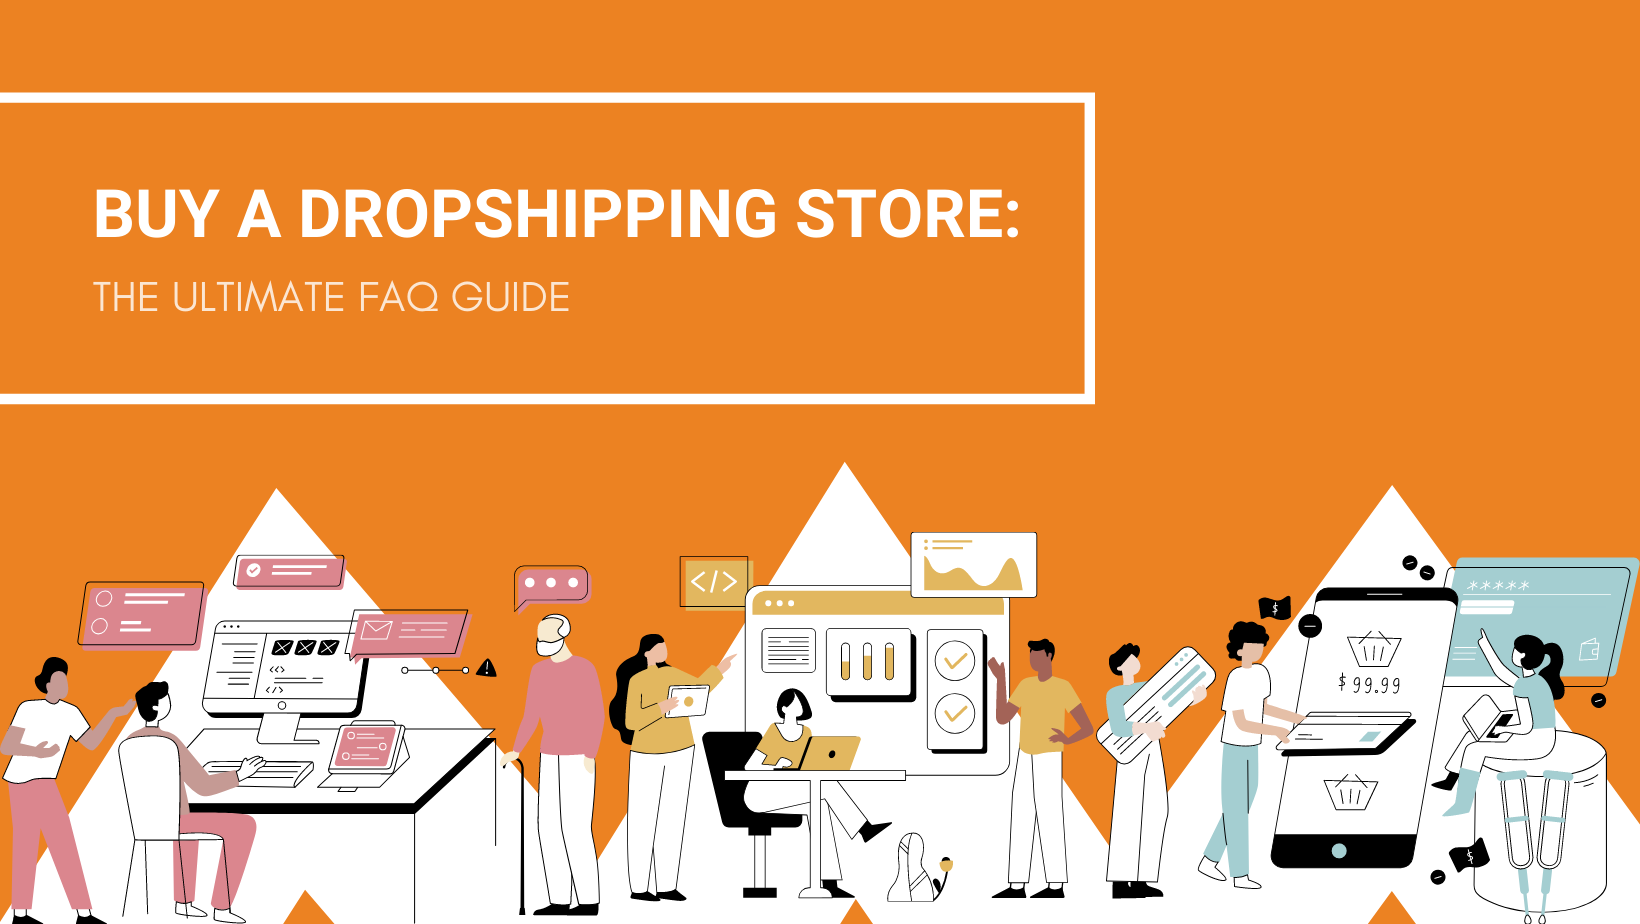 BUY A DROPSHIPPING STORE